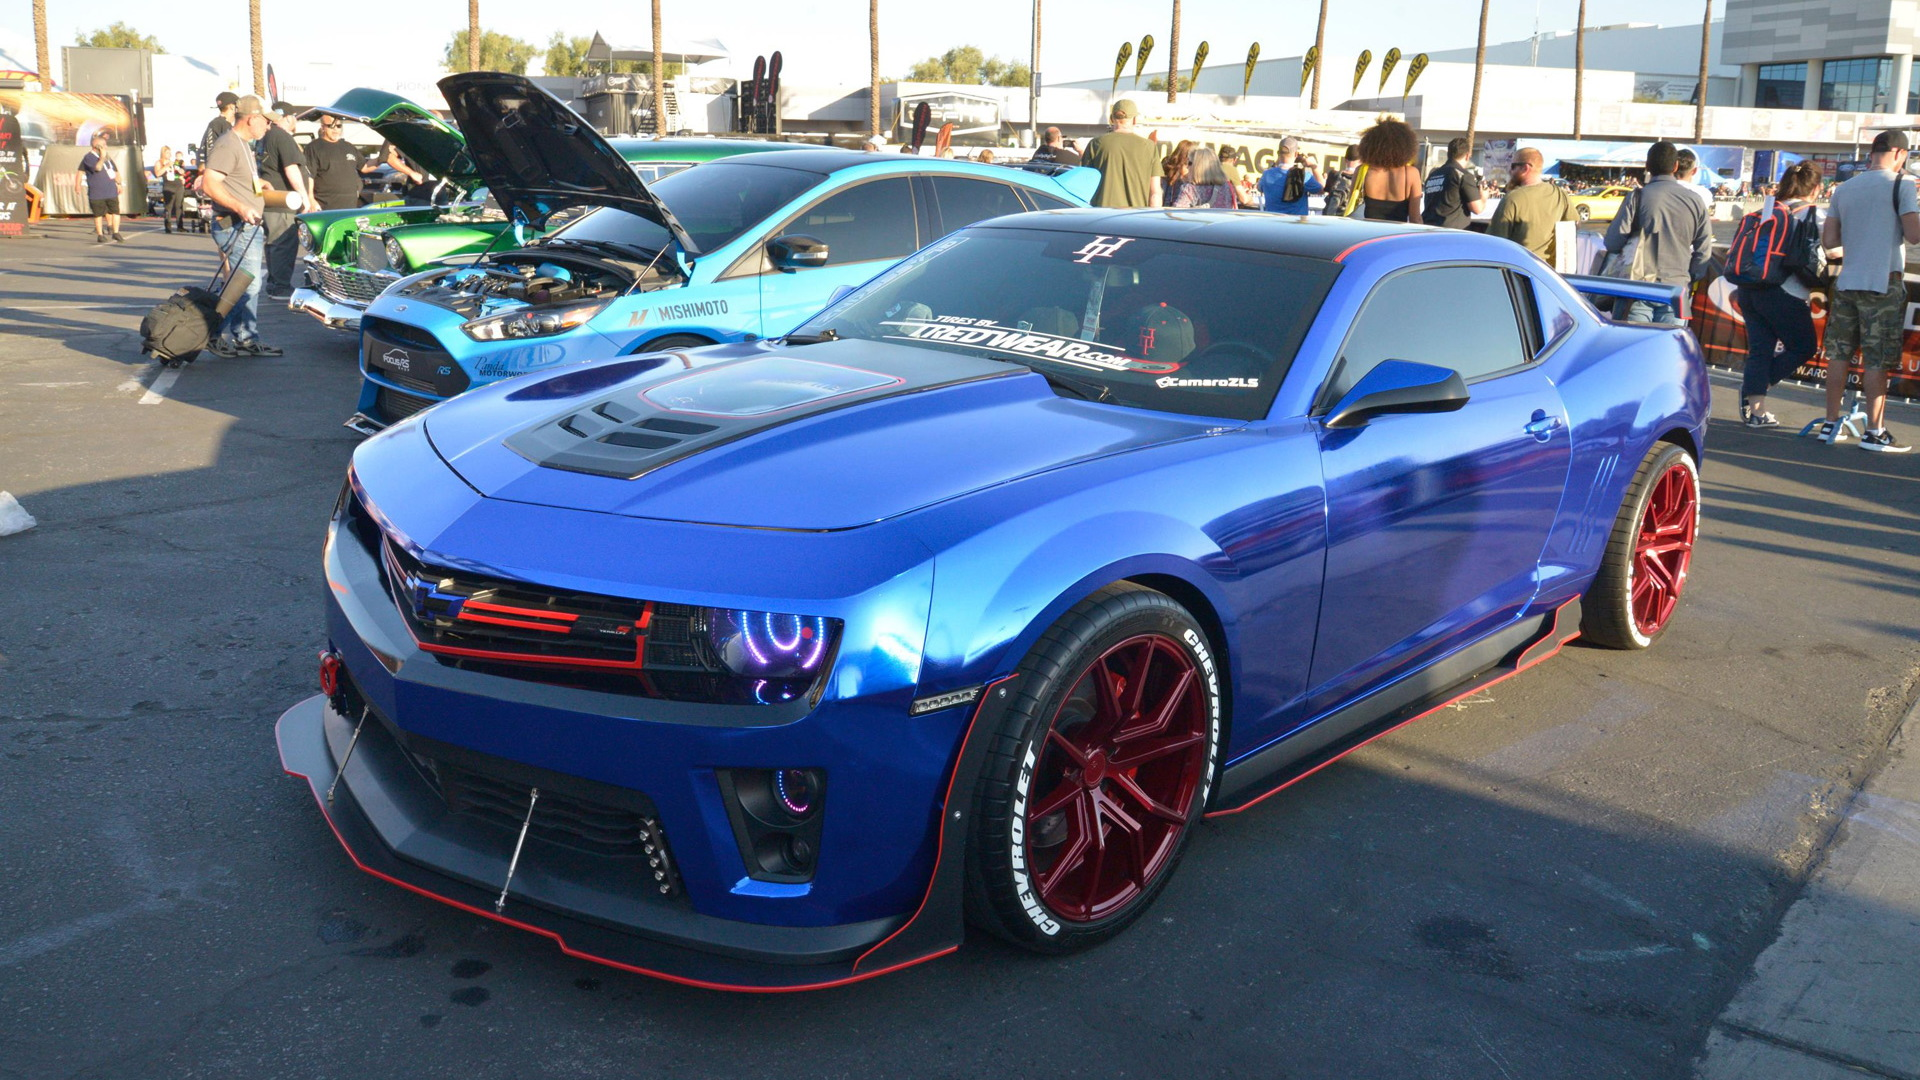 Modified Chevrolet Camaro at 2017 SEMA show